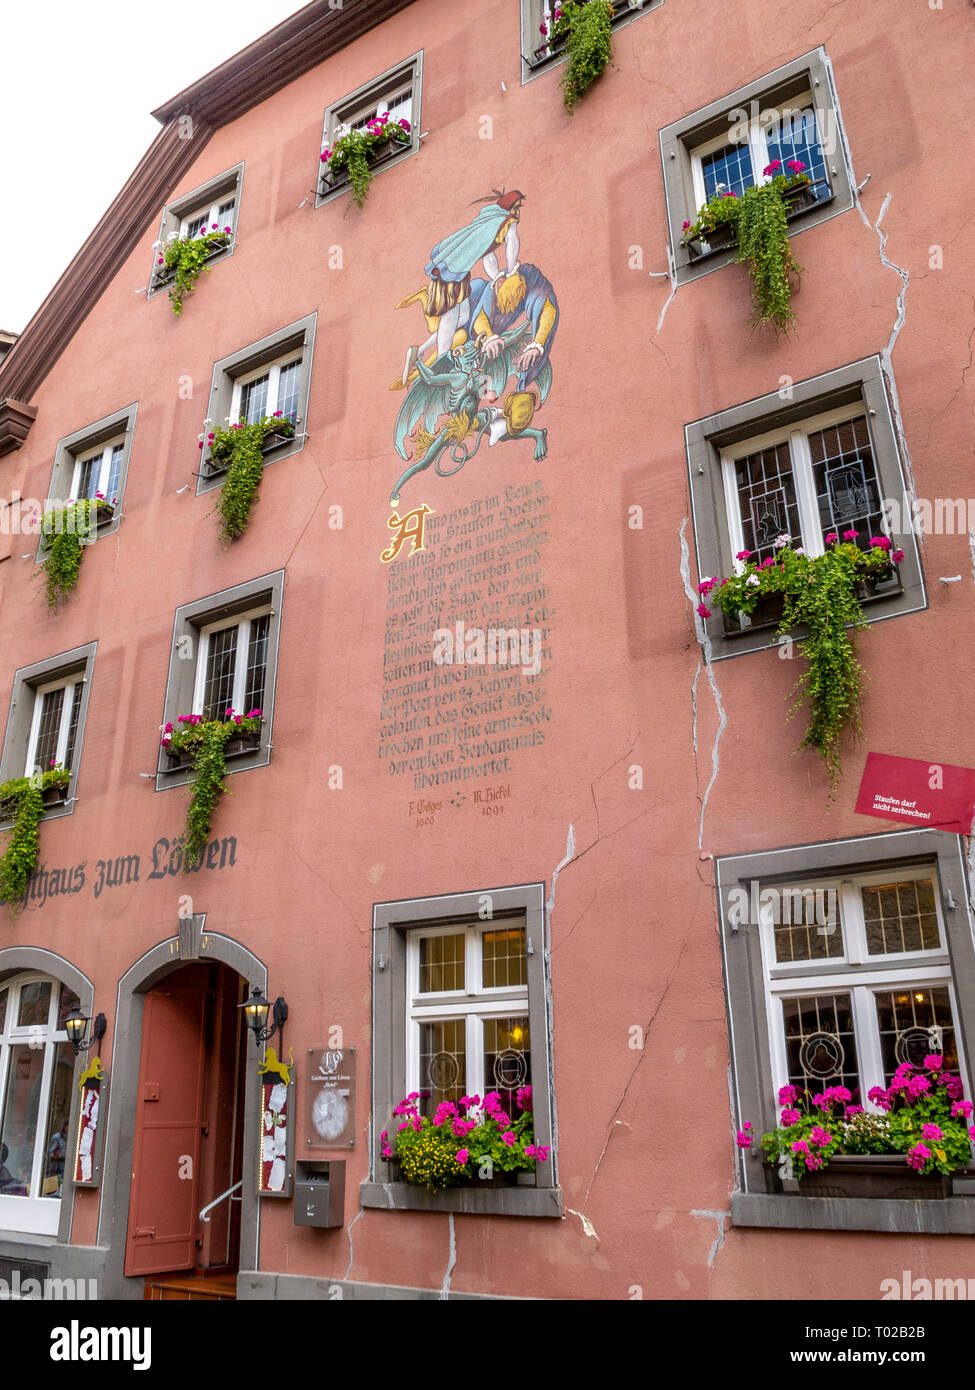 STAUFEN IM BREISGAU, GERMANY - SEPTEMBER 14, 2015: Facade of the inn Gasthaus zum Loewen - the presumed place of death of Dr. Faustus - Stock Image